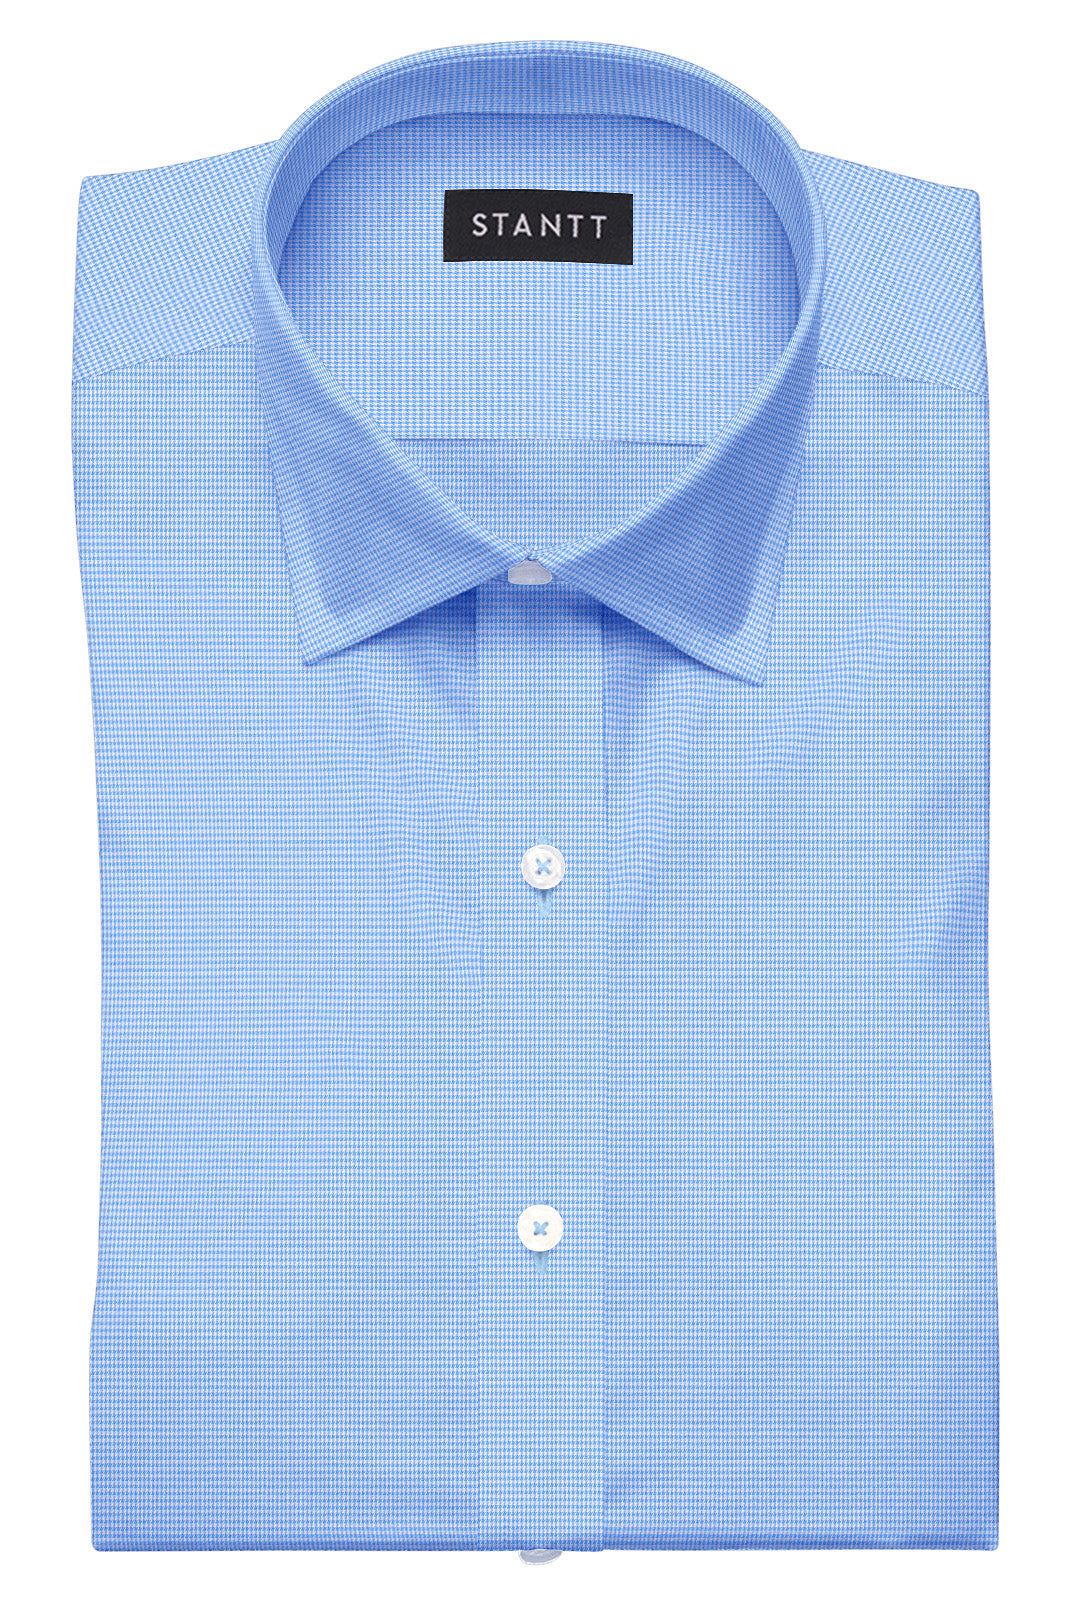 Wrinkle-Resistant French Blue Houndstooth: Cutaway Collar, French Cuff